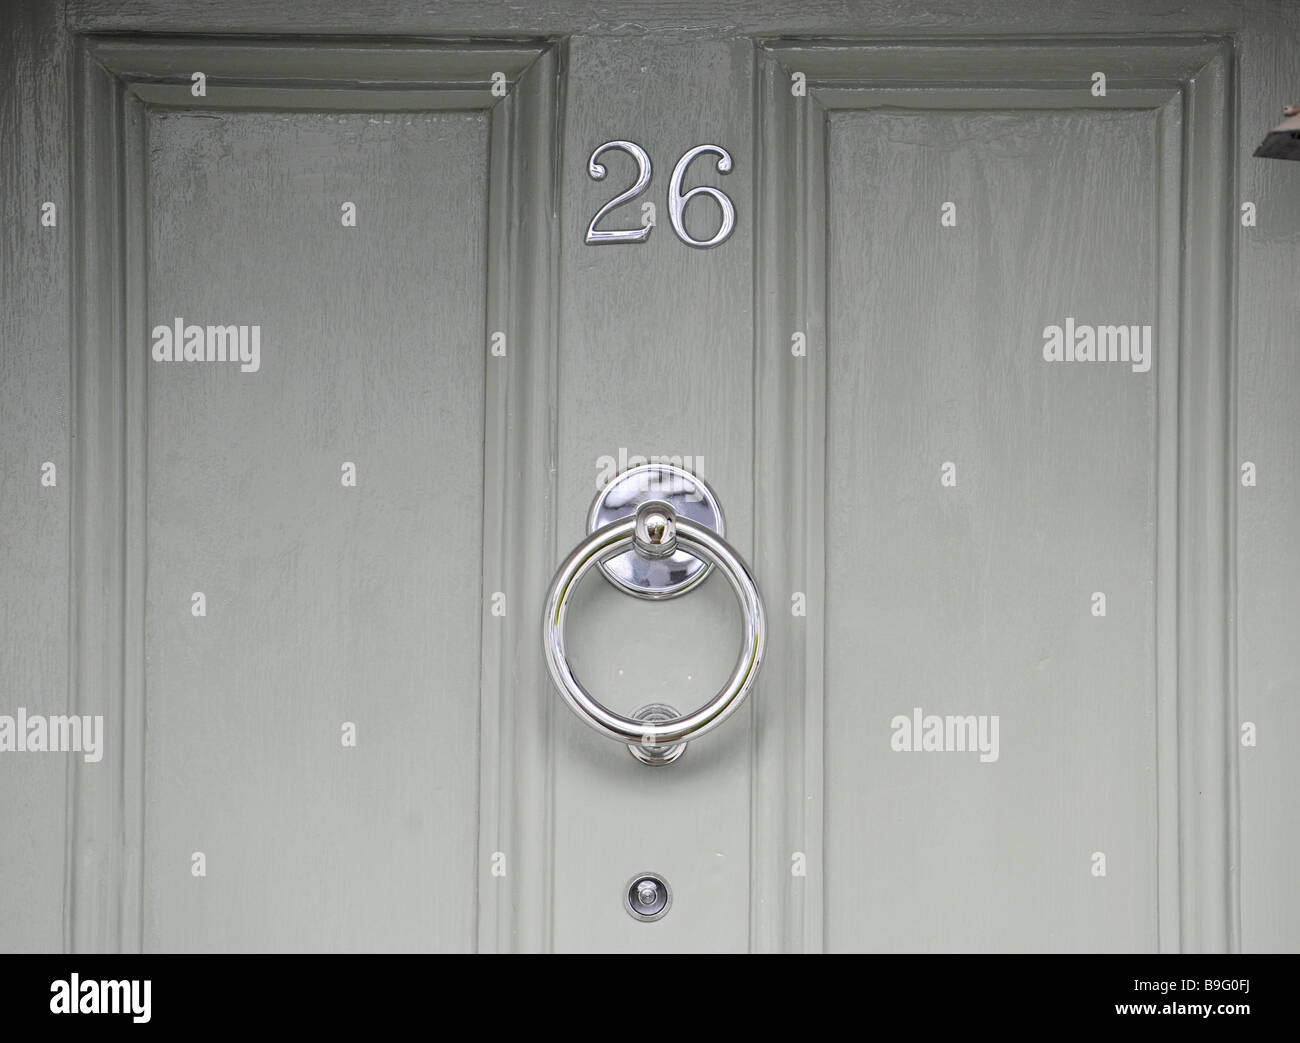 Wonderful The House Number 26, A Peep Hole And A Door Knocker On The Painted Door Of  An English Property, Flat, Home, Maisonette